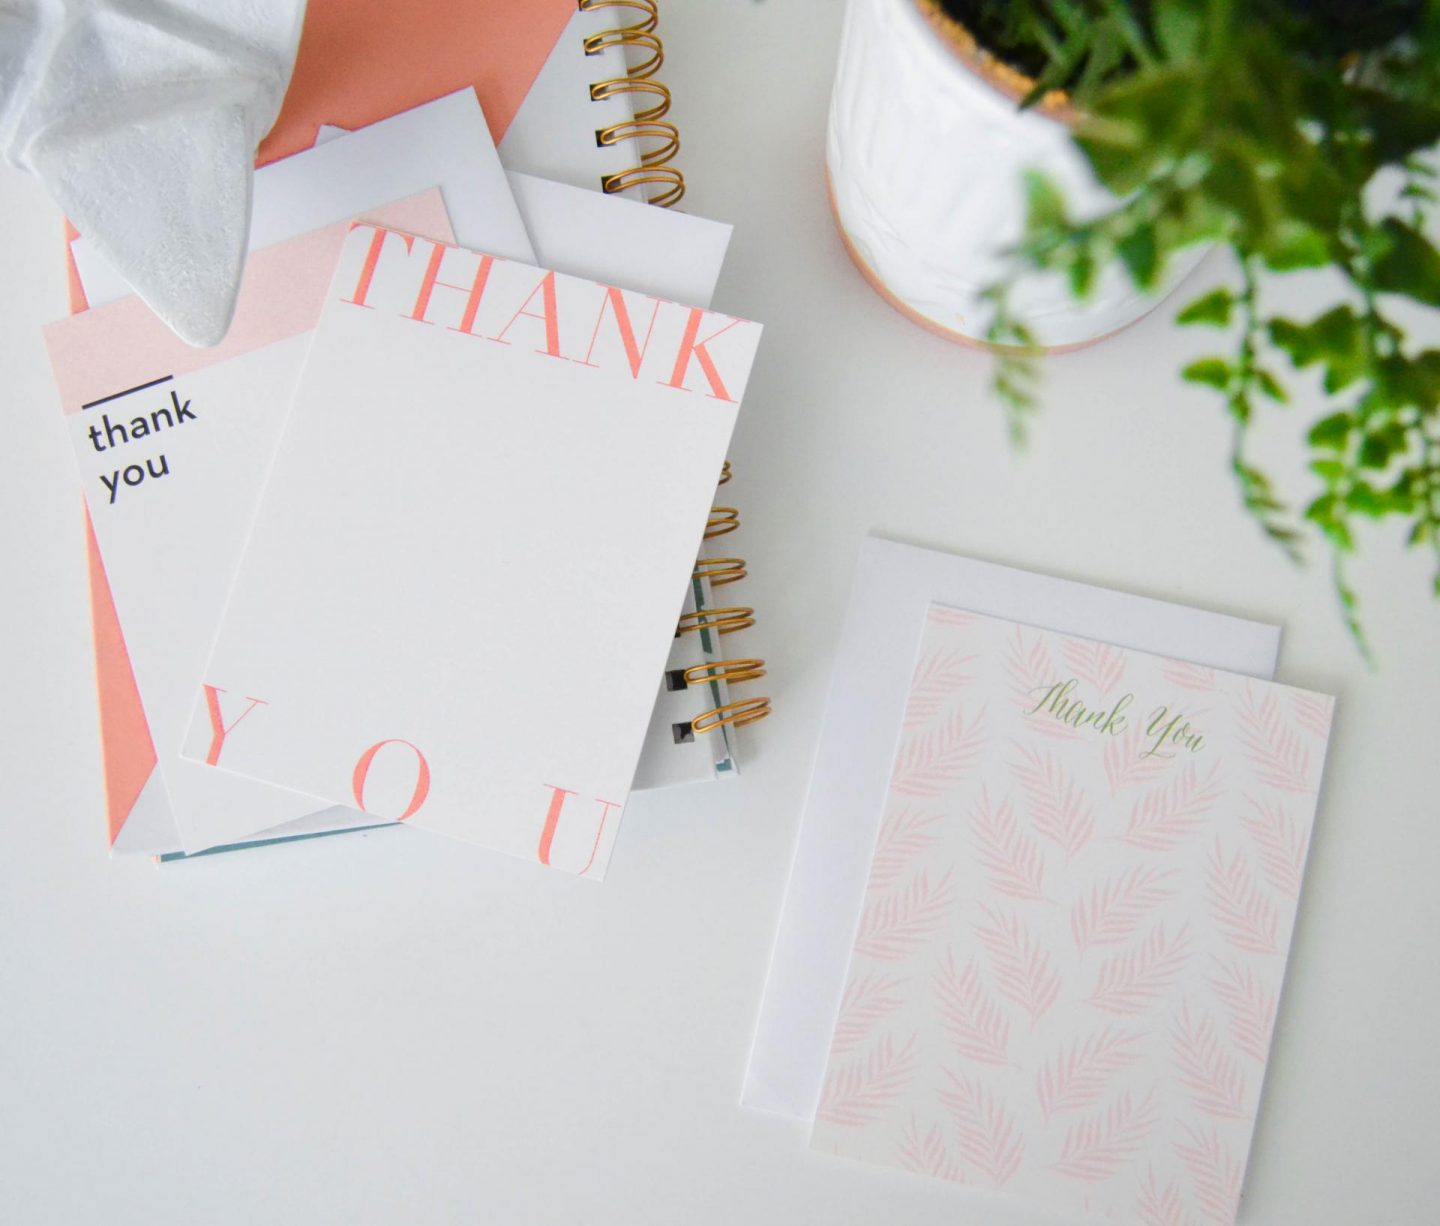 Thank You Cards to Holiday Party Invitations…Basic Invite Has You Covered